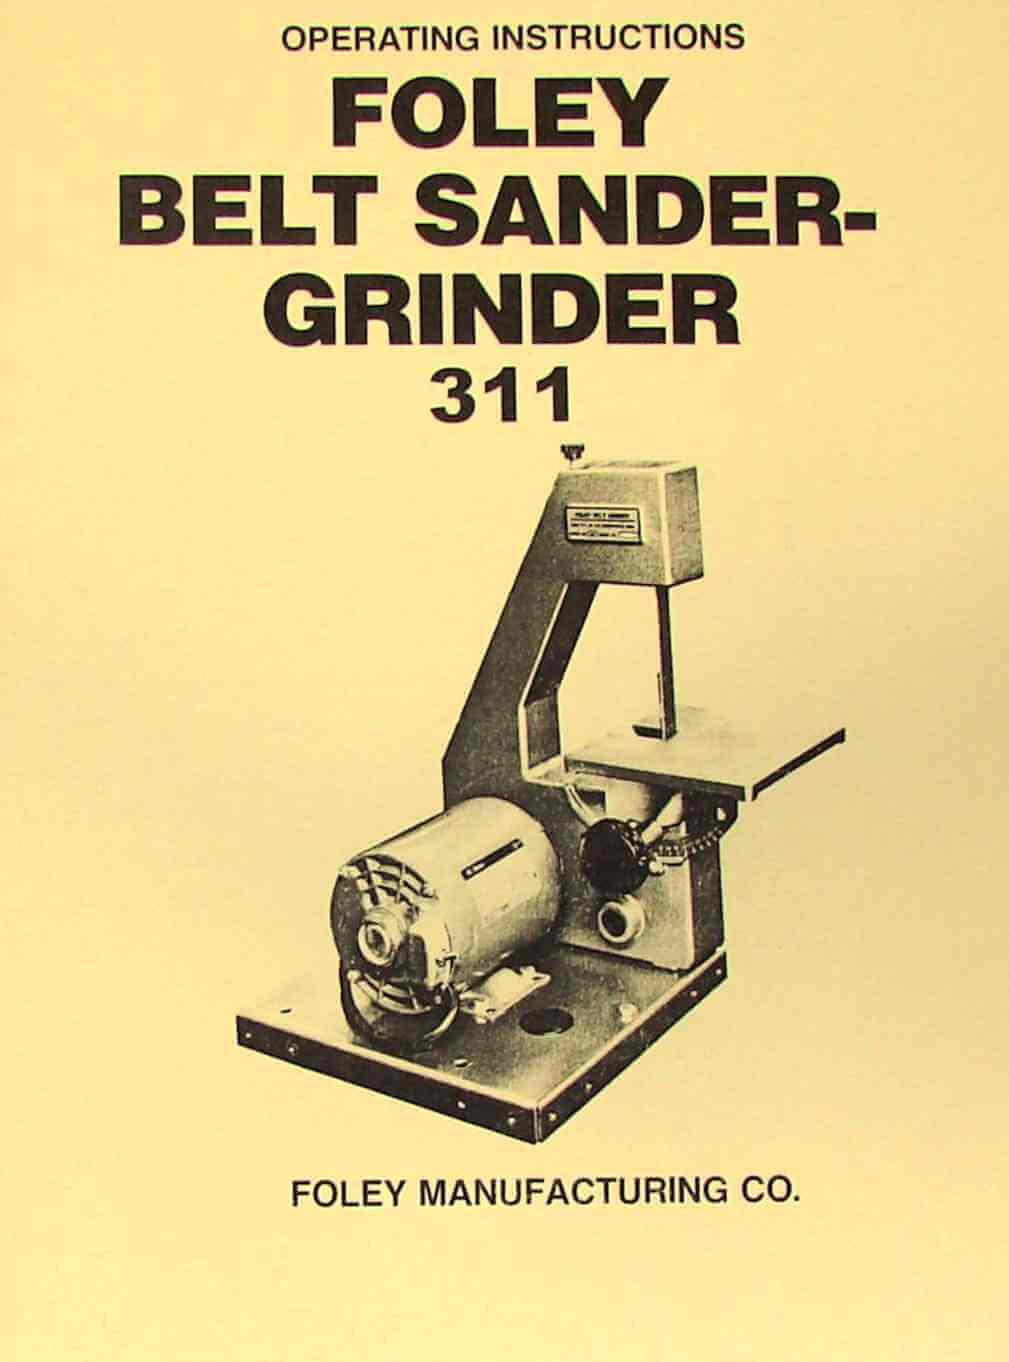 Pleasant Foley 311 Belt Sander Grinder Instructions Parts Manual Caraccident5 Cool Chair Designs And Ideas Caraccident5Info